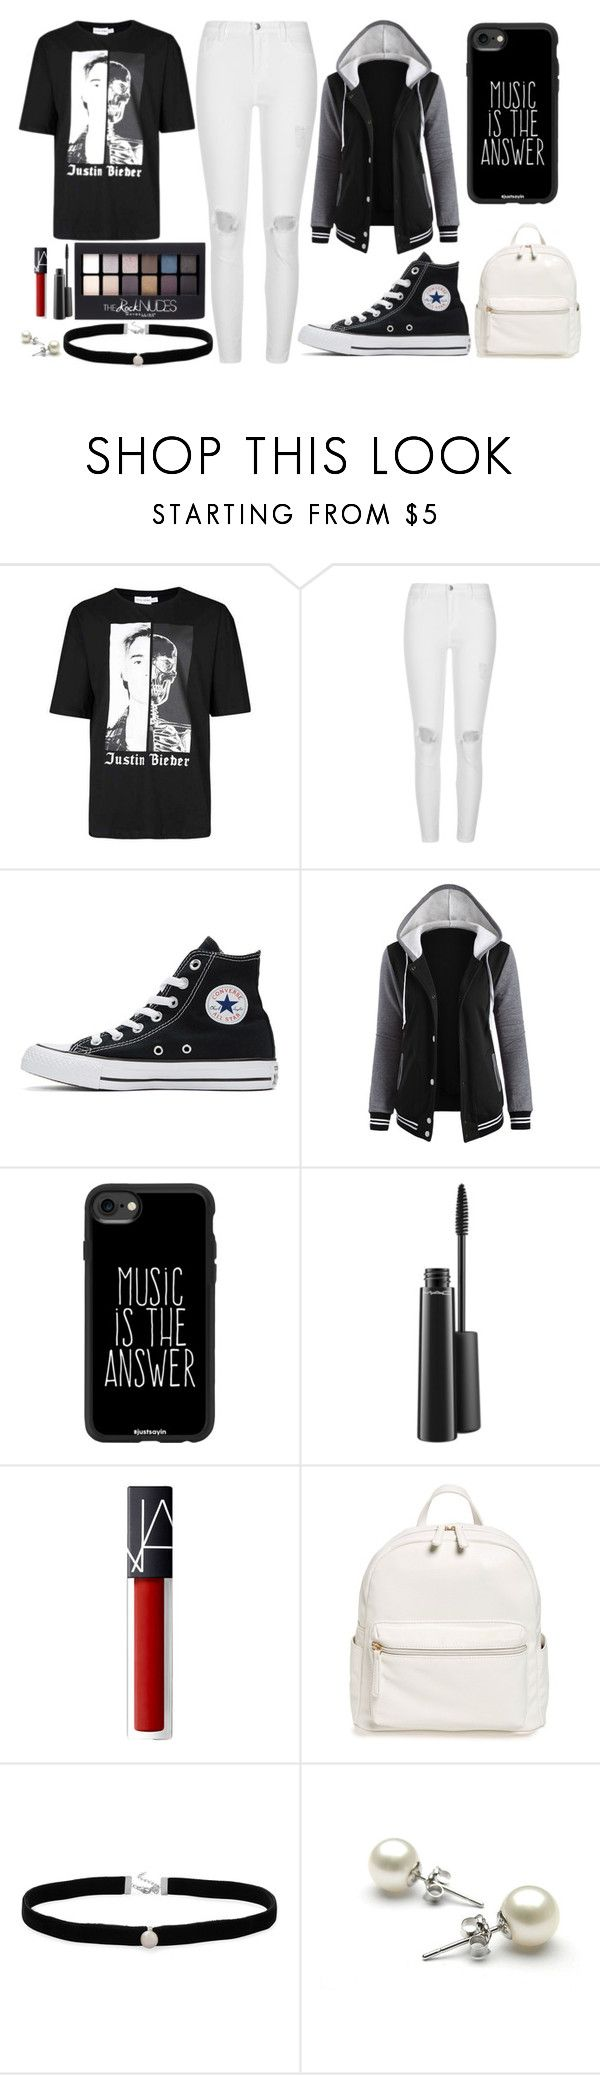 """""""Justin B"""" by thisisalle on Polyvore featuring Justin Bieber, River Island, Converse, Casetify, Maybelline, MAC Cosmetics, BP. and Amanda Rose Collection"""